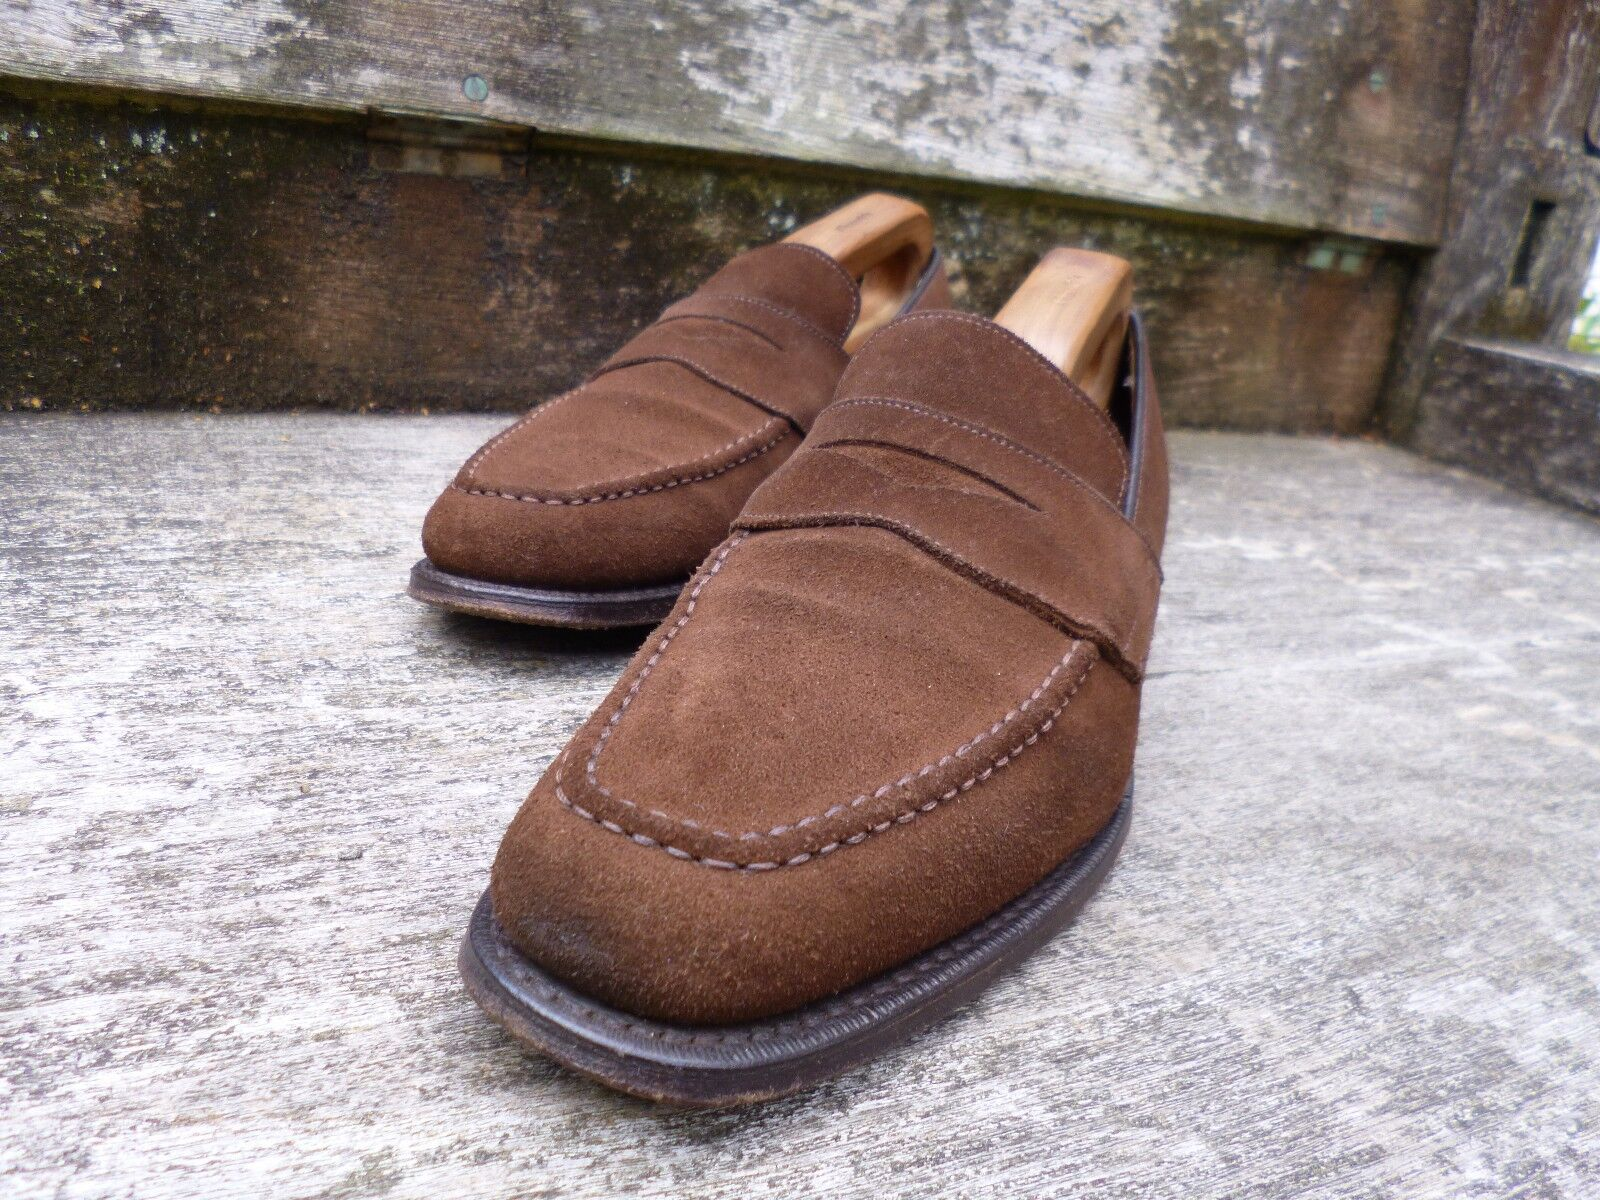 CHURCH CHURCH CHURCH LOAFERS – BROWN SUEDE – UK 6 – HERTFORD – EXCELLENT CONDITION 5d31df